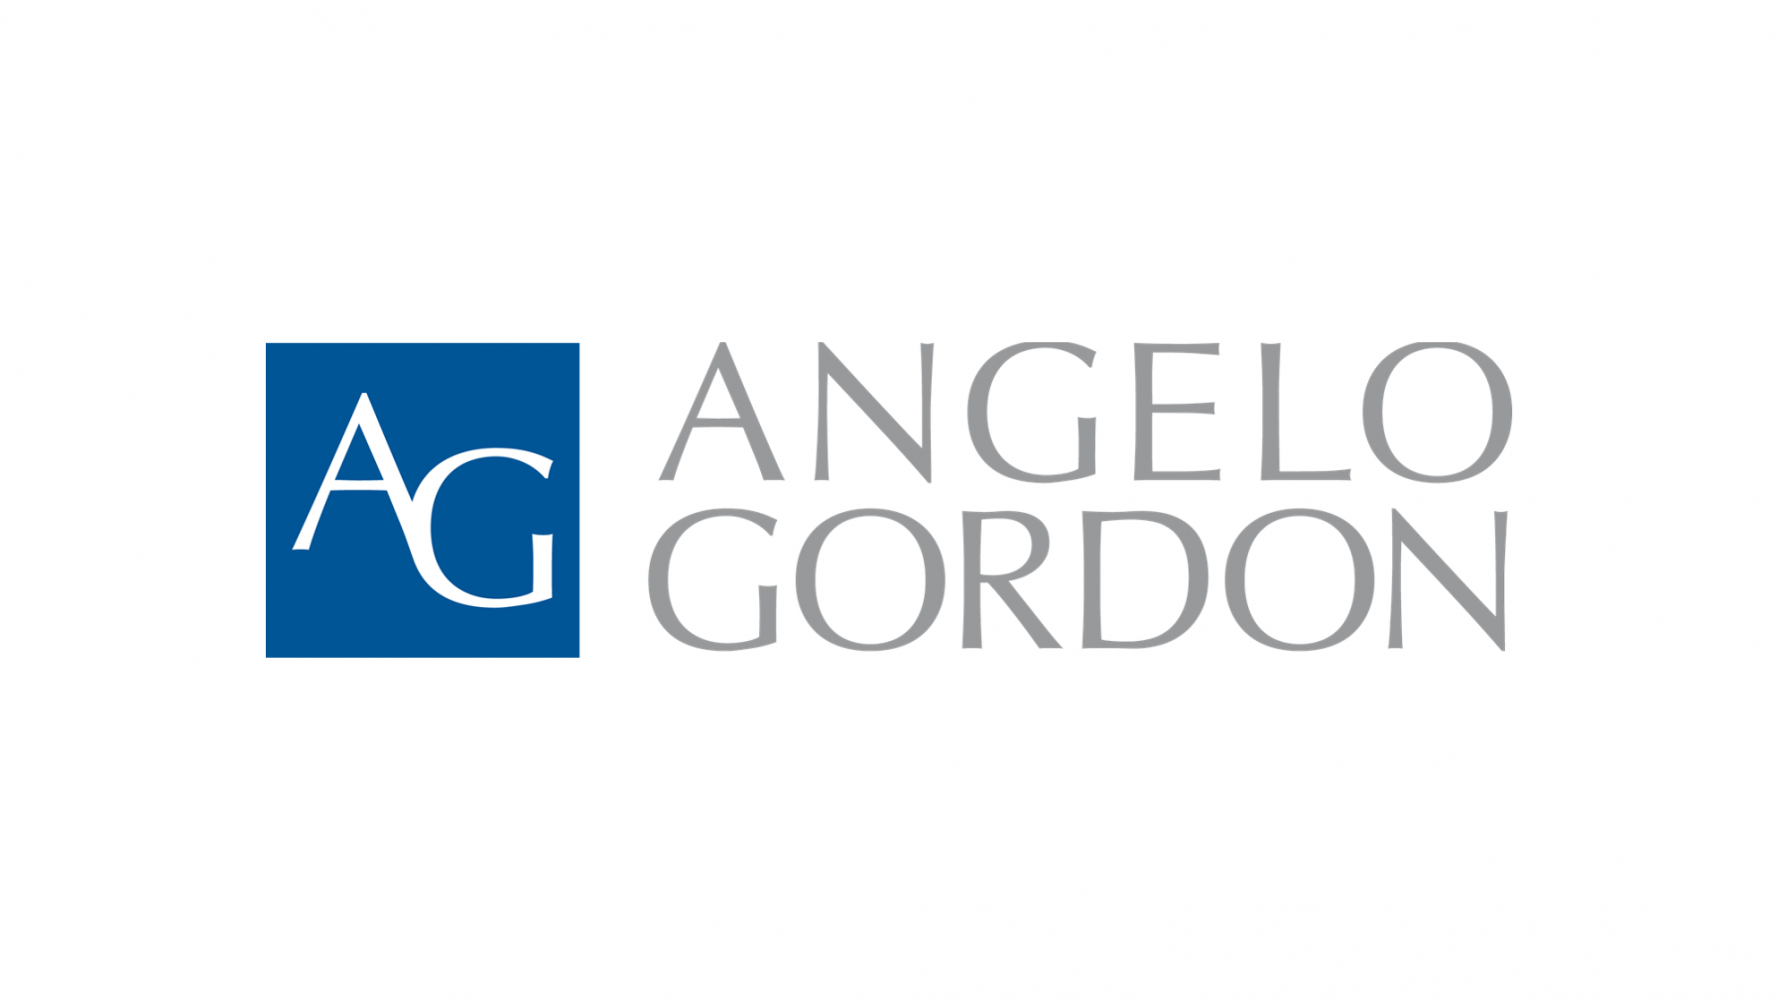 Angelo Gordon is a leading, privately-held alternative investment firm, managing approximately $23 billion across a broad range of credit and real estate investments